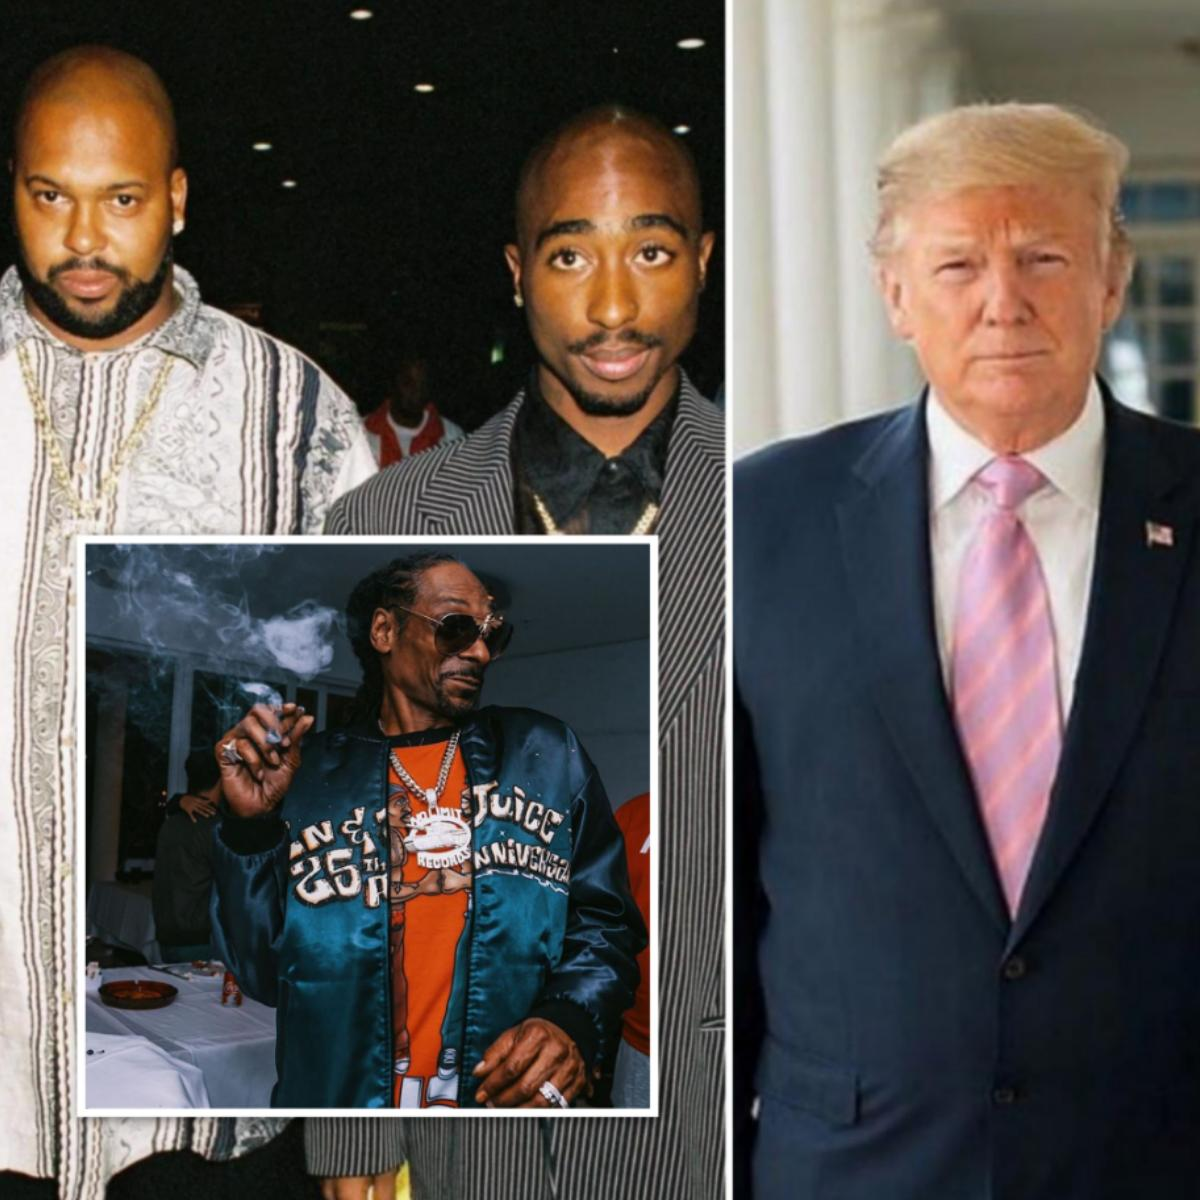 Trump Running United States Like Death Row Records Snoop Dogg